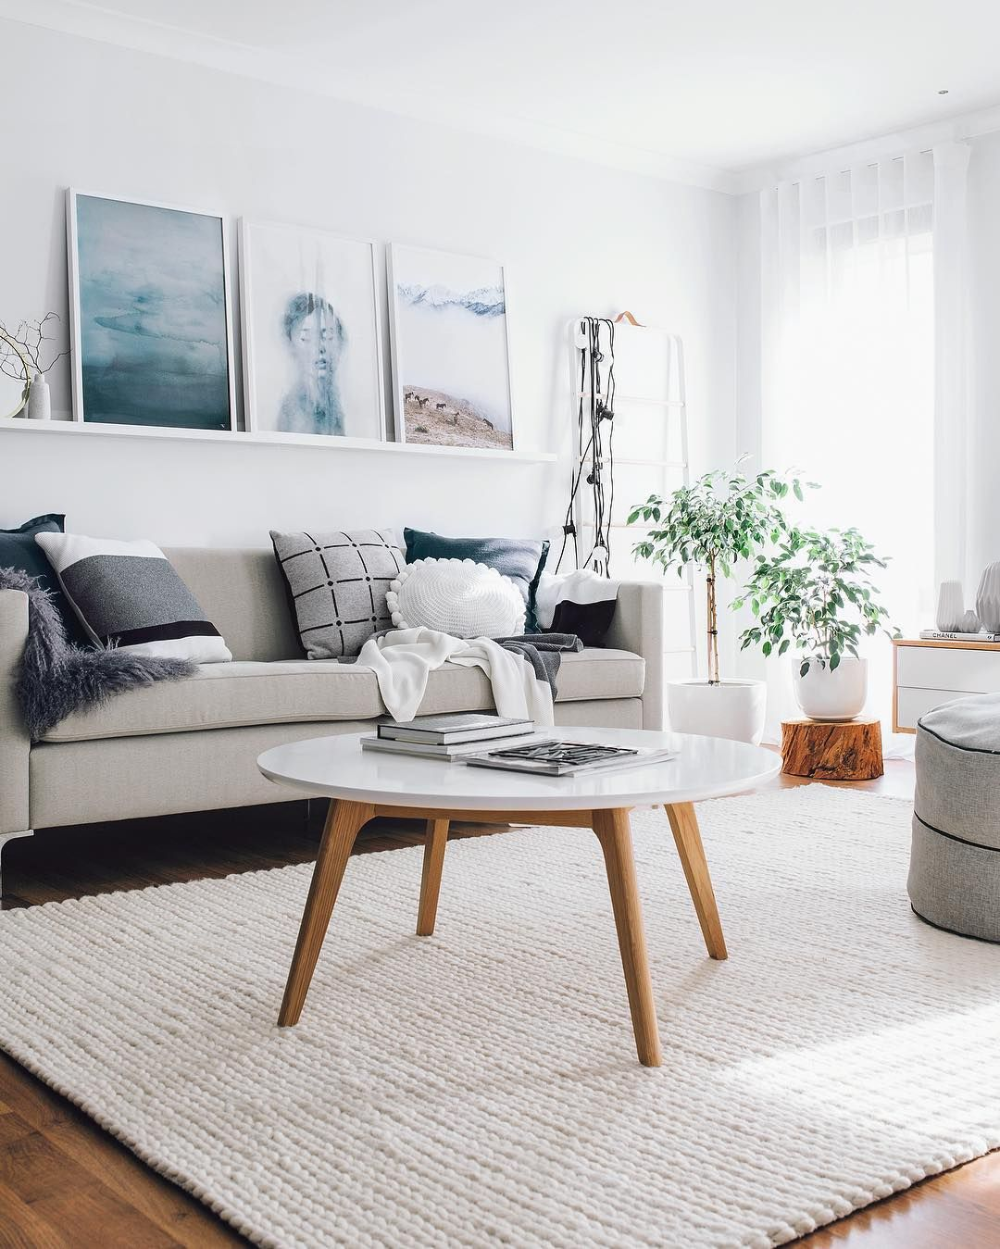 12 Scandinavian Rugs For The Perfect Nordic Look In 2020 Scandinavian Decor Living Room Living Room Carpet Living Room Scandinavian